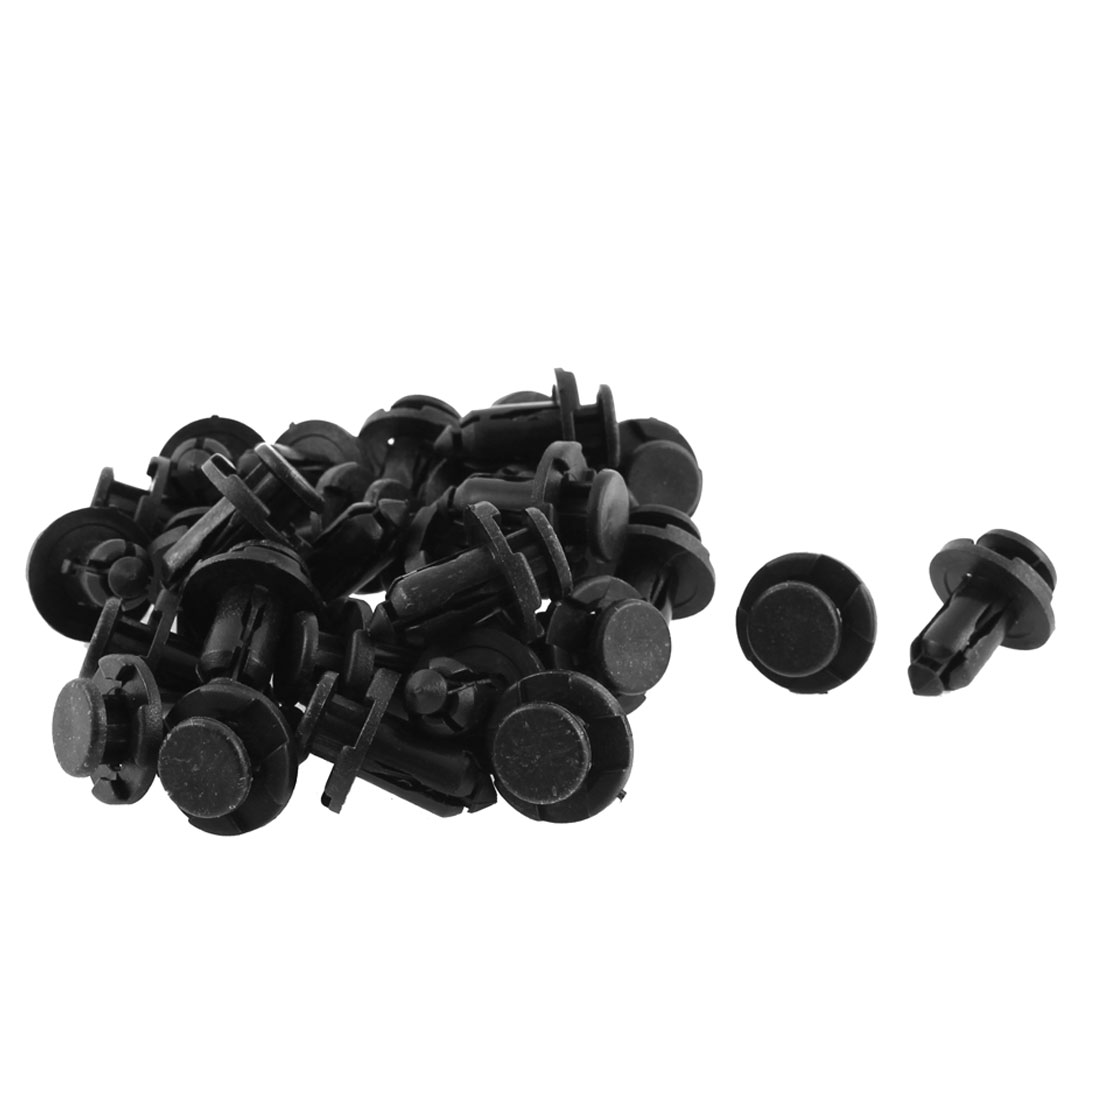 10mm x 20mm x 18mm Plastic Car Bumper Fender Push Clips Rivet Retainer 30pcs